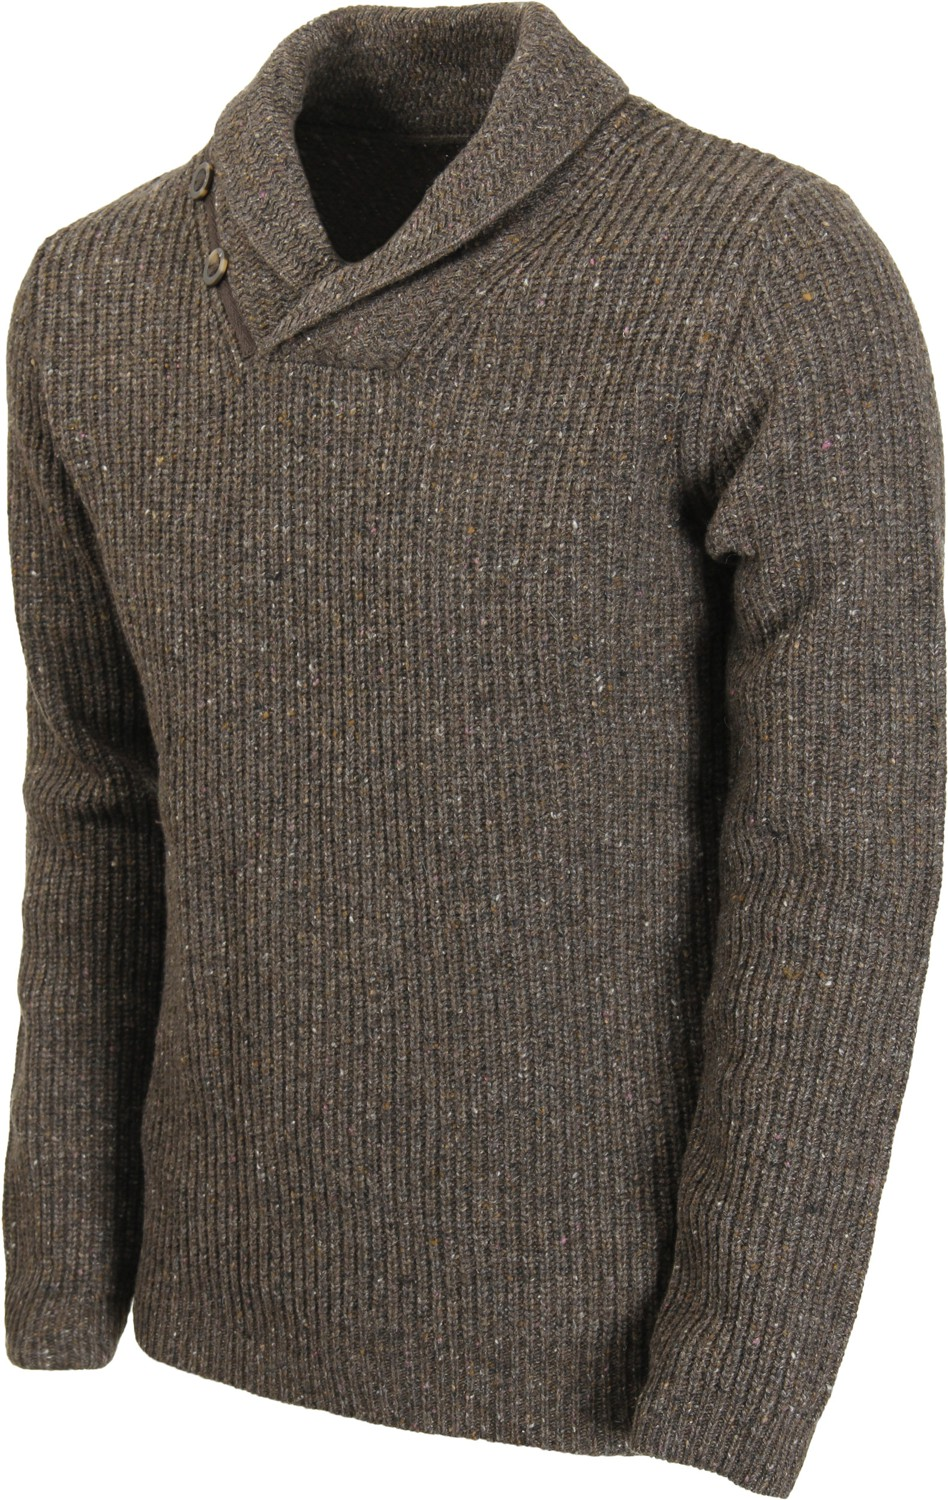 holden-shawl-collar-wool-sweater-medium-grey Best 10 Ideas for Choosing Winter Gifts